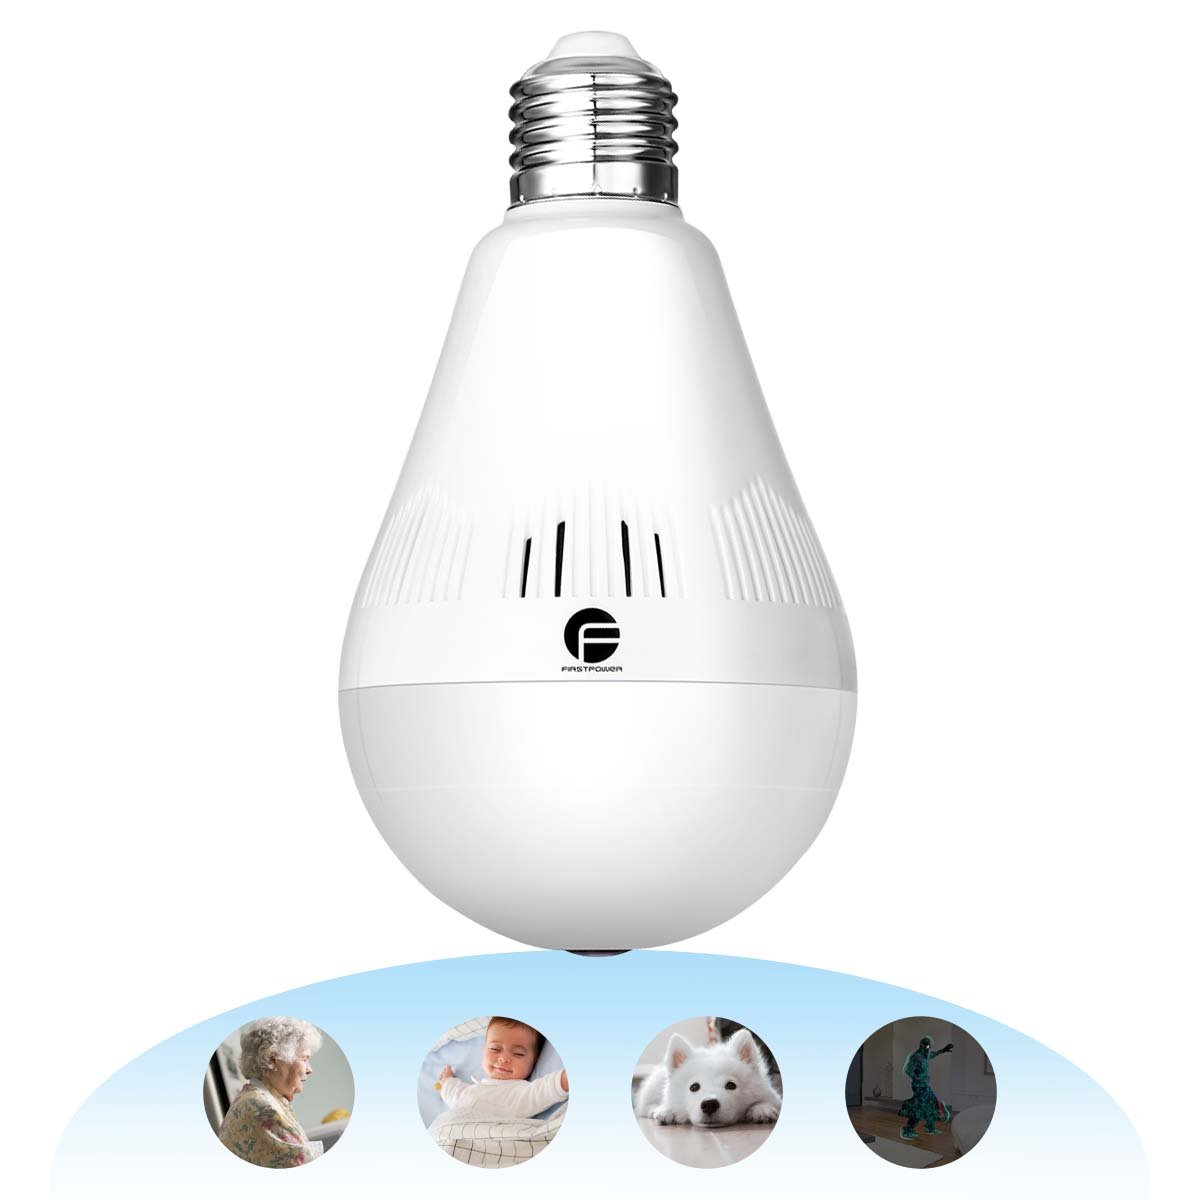 Wireless Security Bulb Camera, FirstPower 960P Home Security Surveillance Camera 360 Panoramic IP Camera with Night Vision Two Way Talking Motion Detection for Android IOS Phone